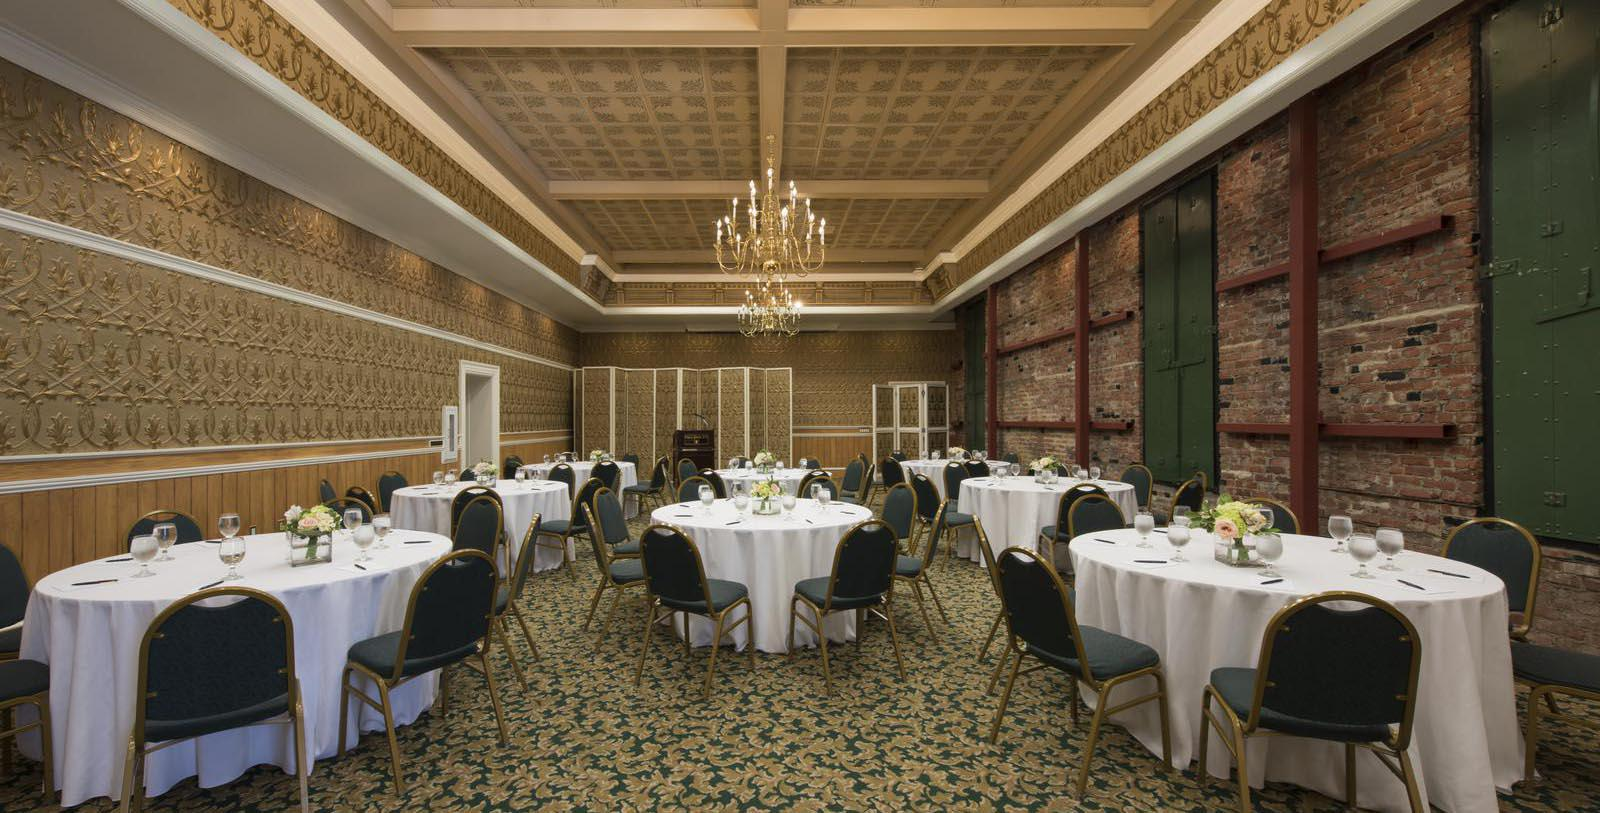 Image of Hatt Hall Meeting Space, Napa River Inn, Napa, California, 1884 Member of Historic Hotels of America, Experience